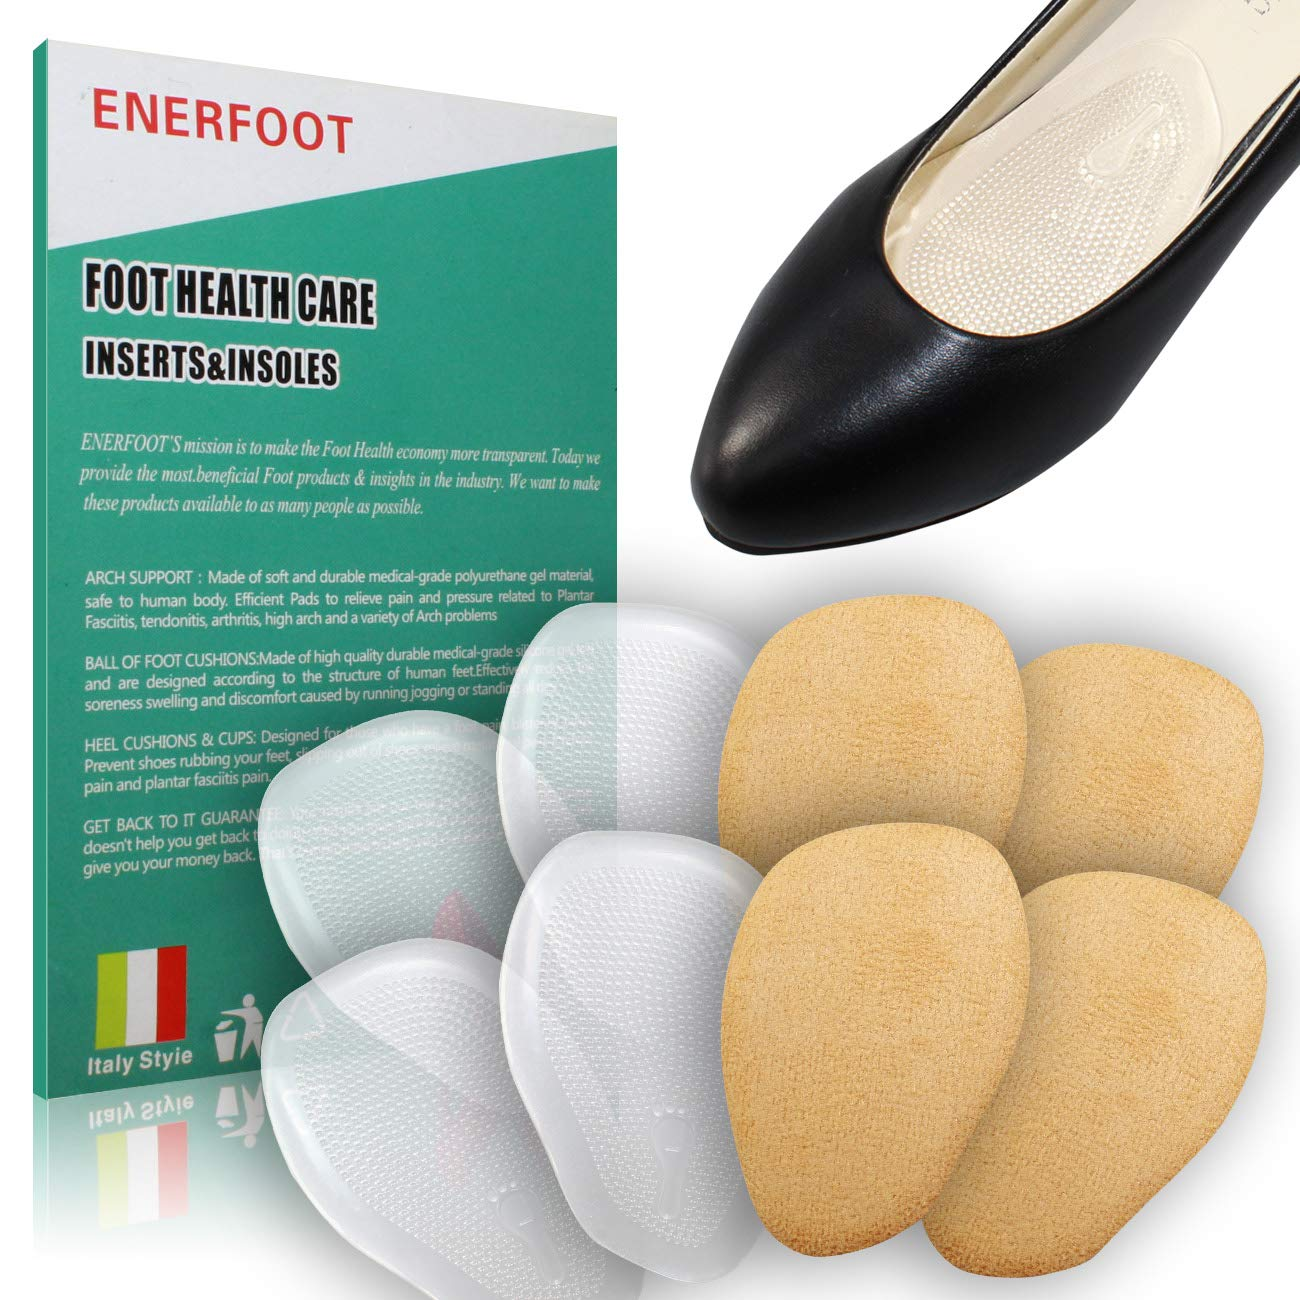 80701992ba1f Amazon.com  Heel Cushion Inserts (4 Pairs  8 Pieces) - Shoe Inserts Women - High  Heel Inserts for Women - Metatarsal Pads for Women - Ball of Foot Cushions  ...